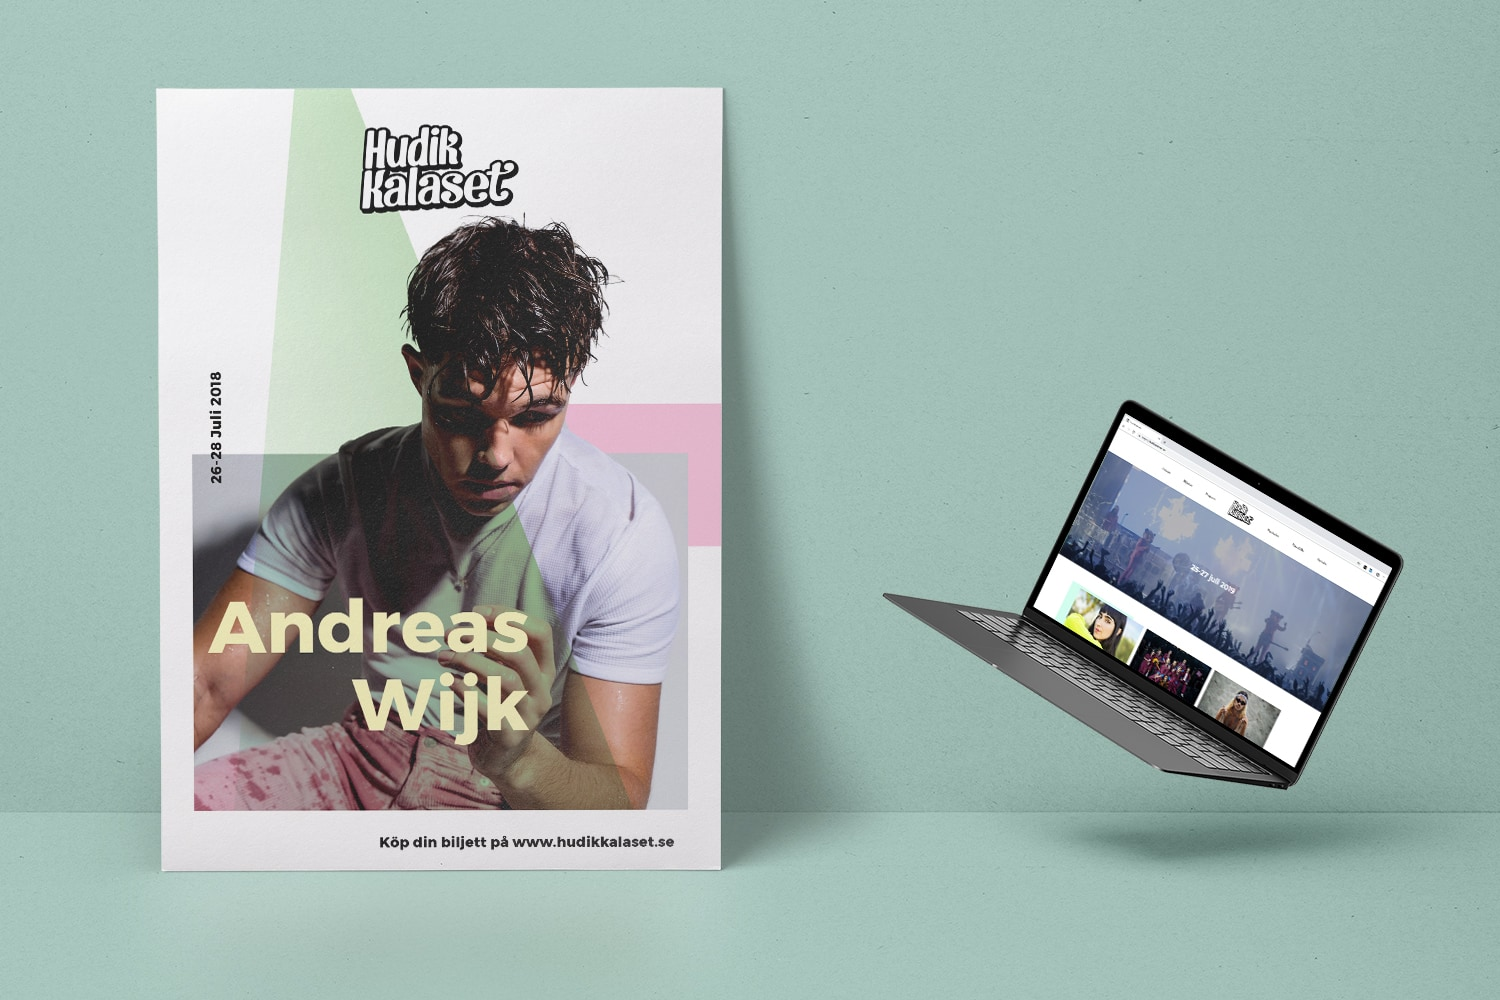 Hudikkalaset: Brand Identity + Website - Creative Direction, Art Direction, Design, Web Design